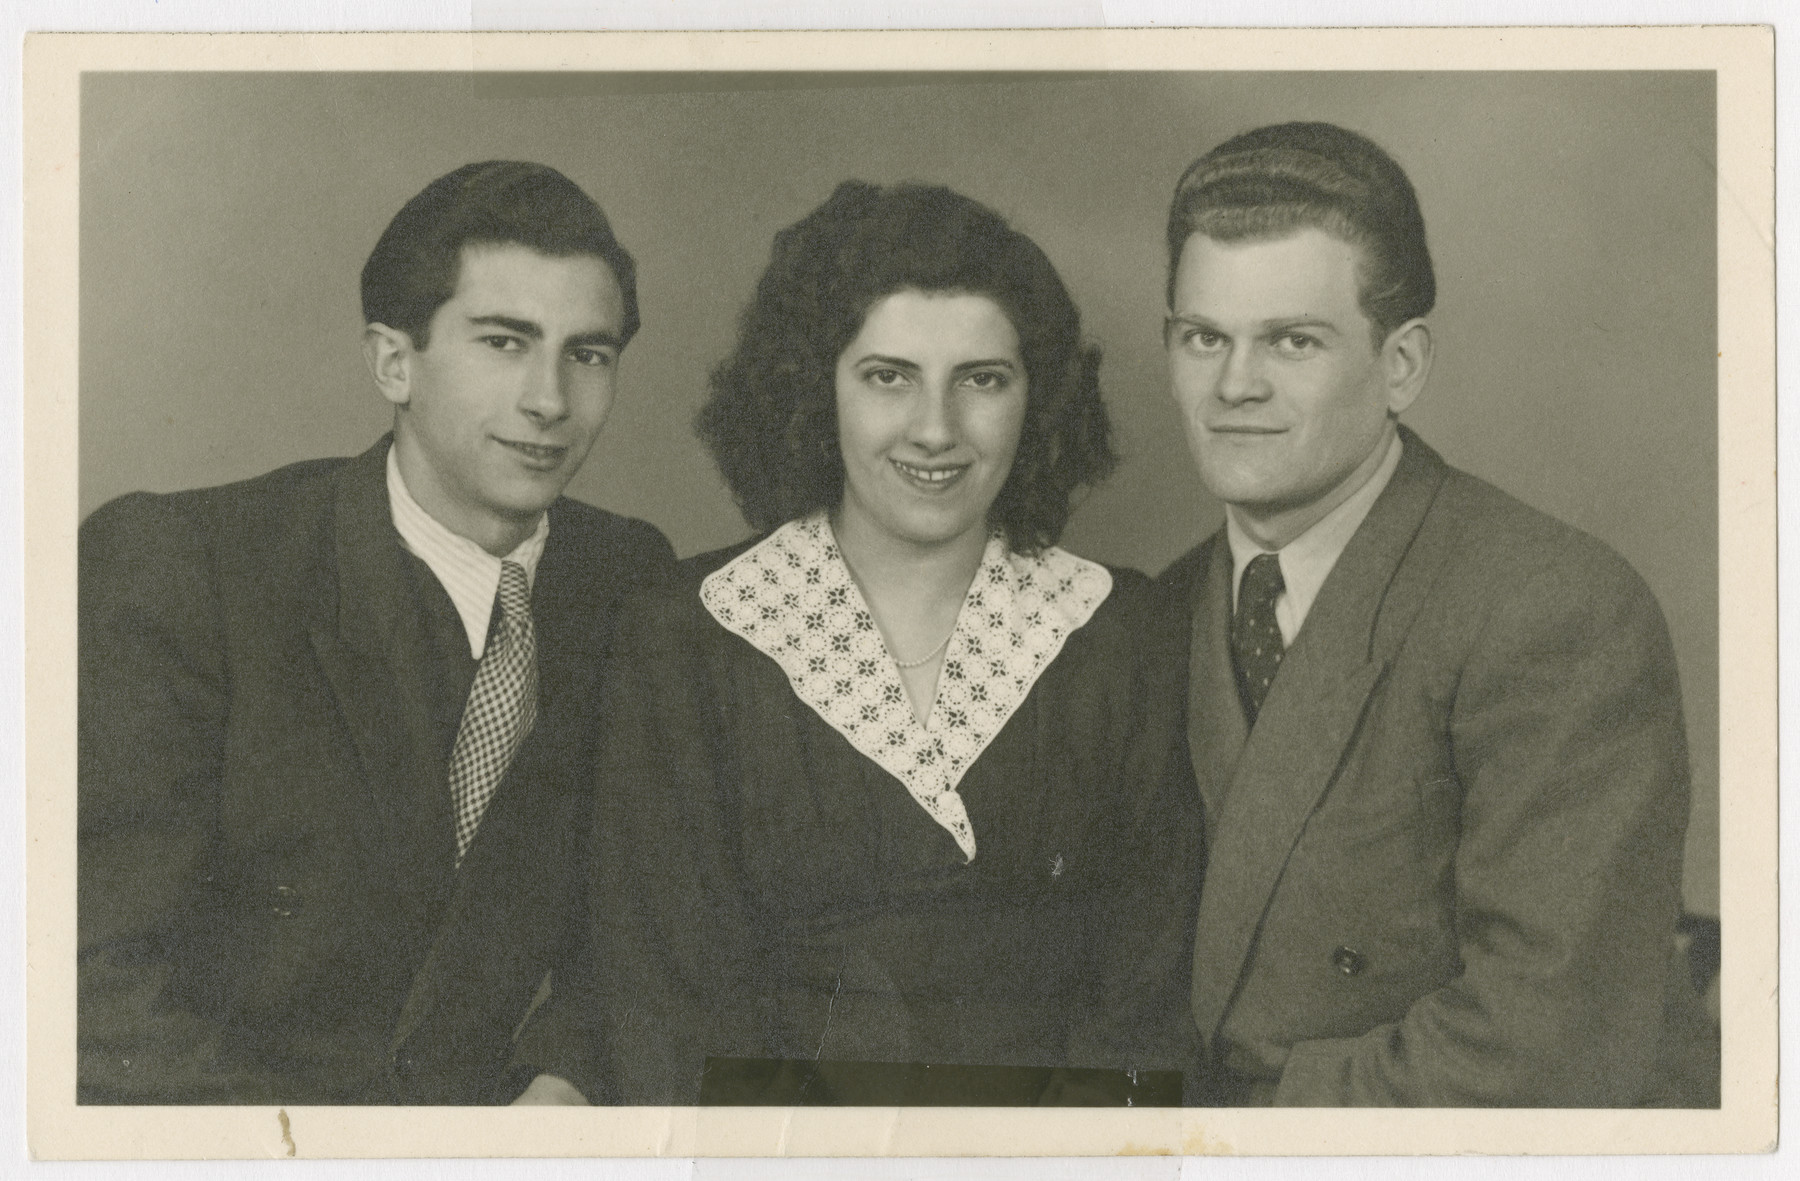 Sziku Smilovic (left) poses for a studio portrait with his sister and brother-in-law, Heddy and Arthur Spitz, prior to their immigration to the United States.